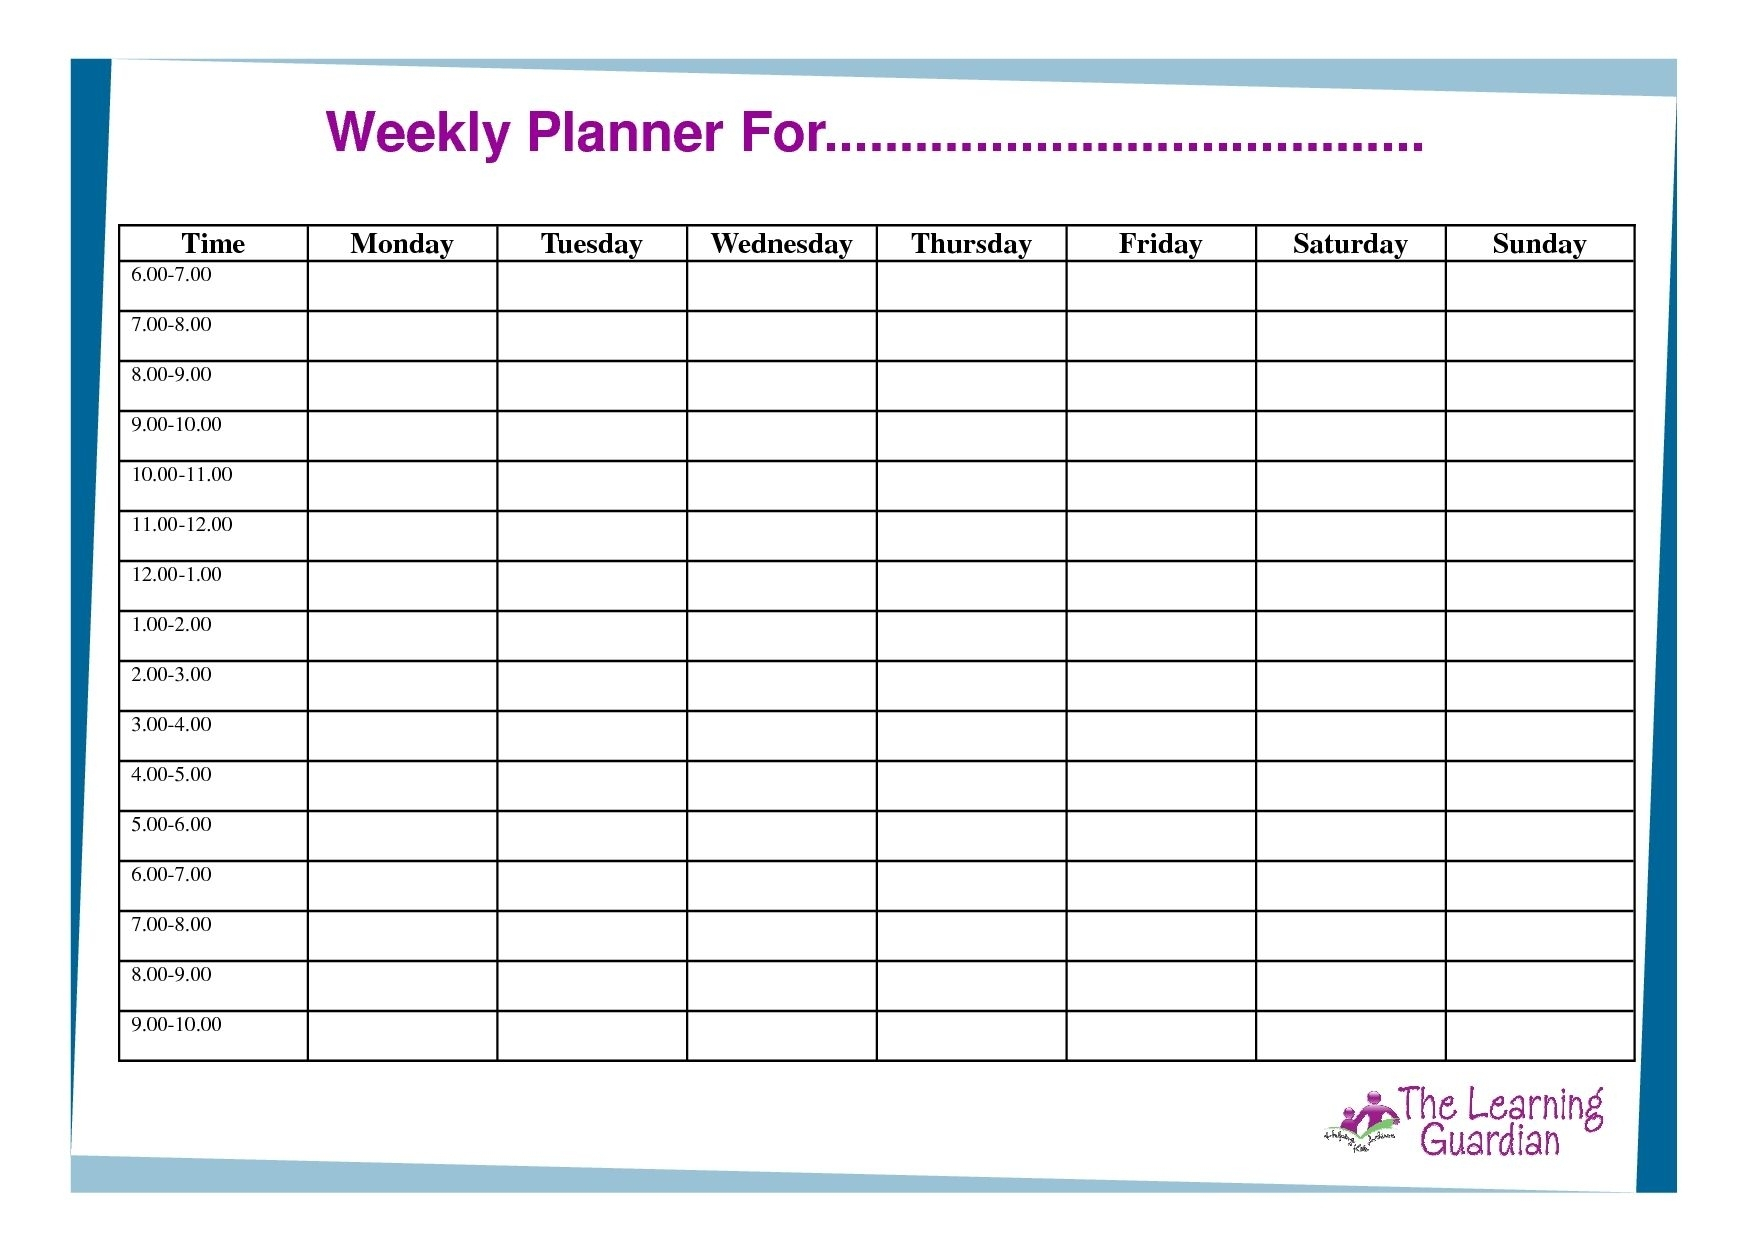 Free Printable Weekly Calendar Templates Planner For Time Incredible within Catholic Daily Planner Template Printable Free